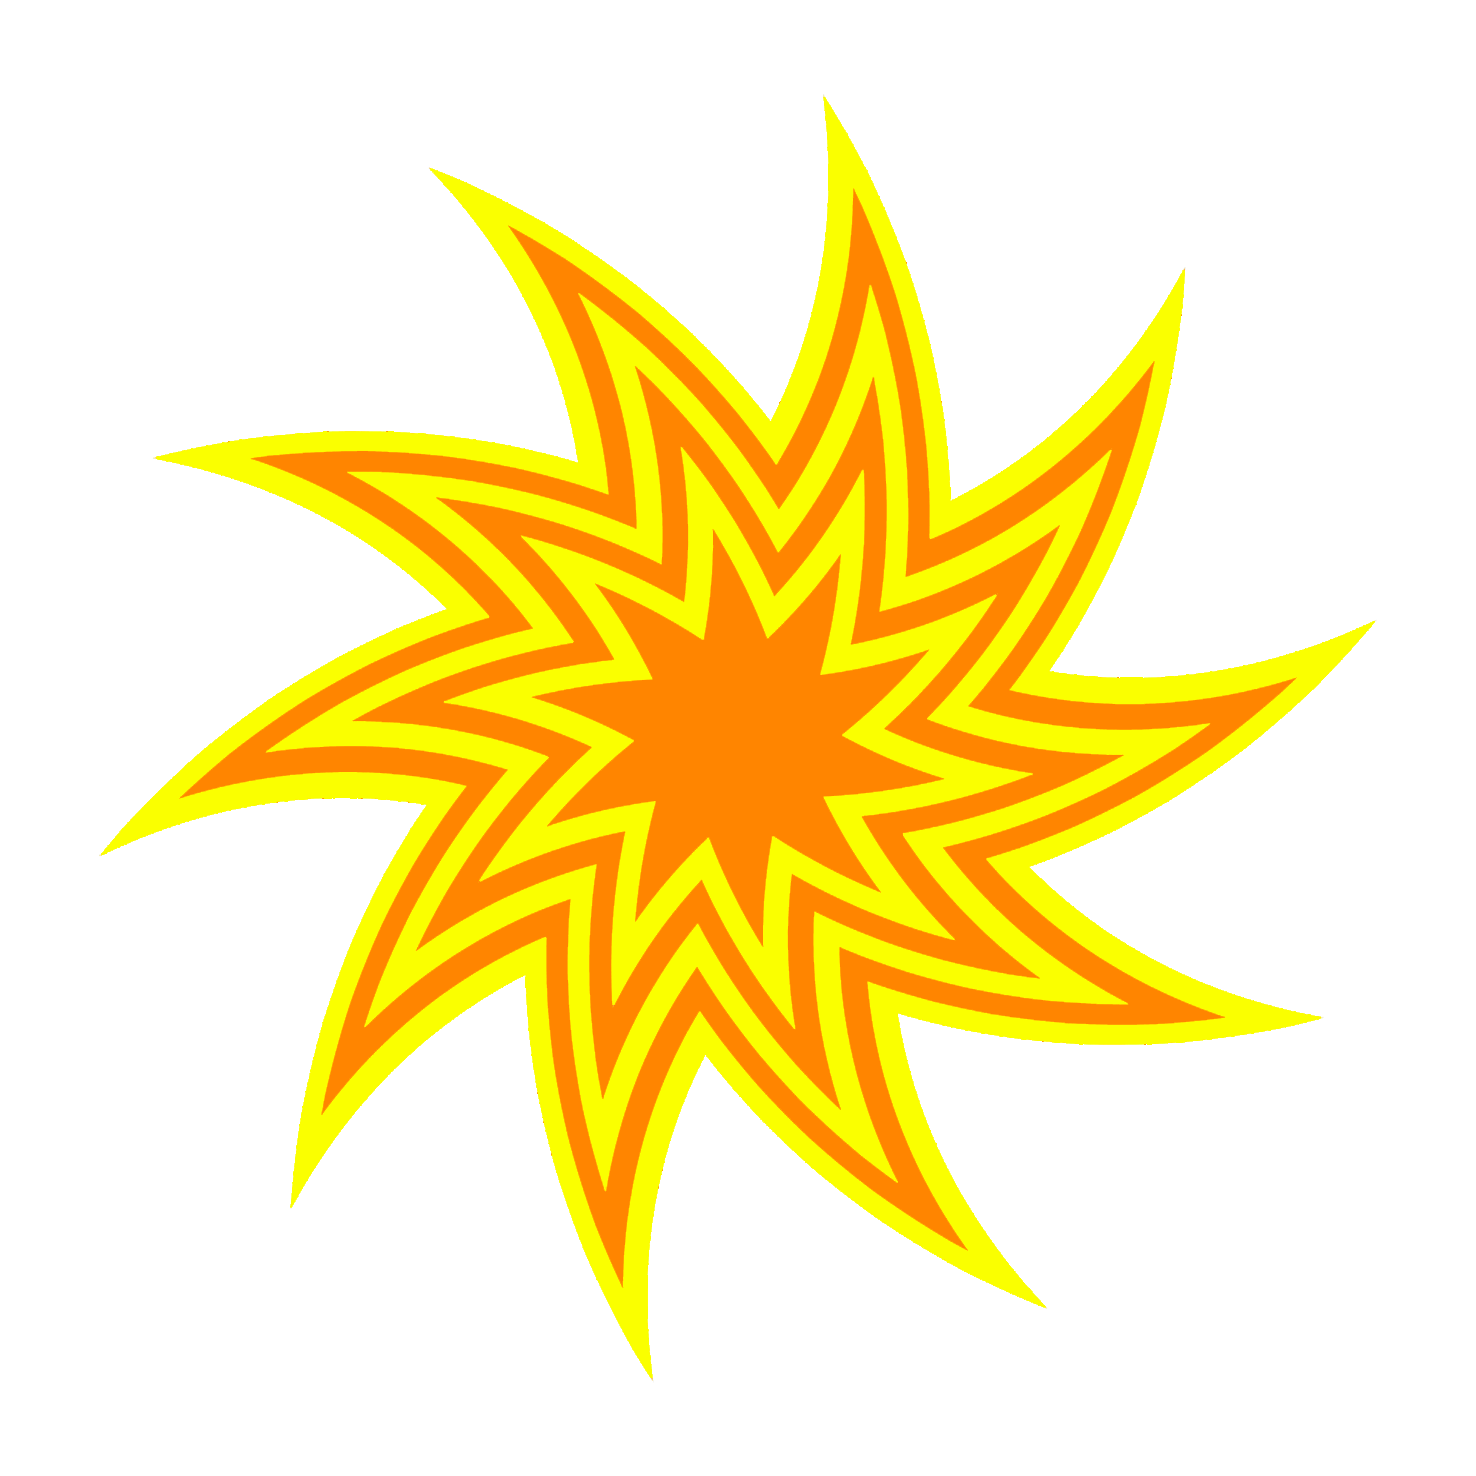 Yellow and orange star swirl